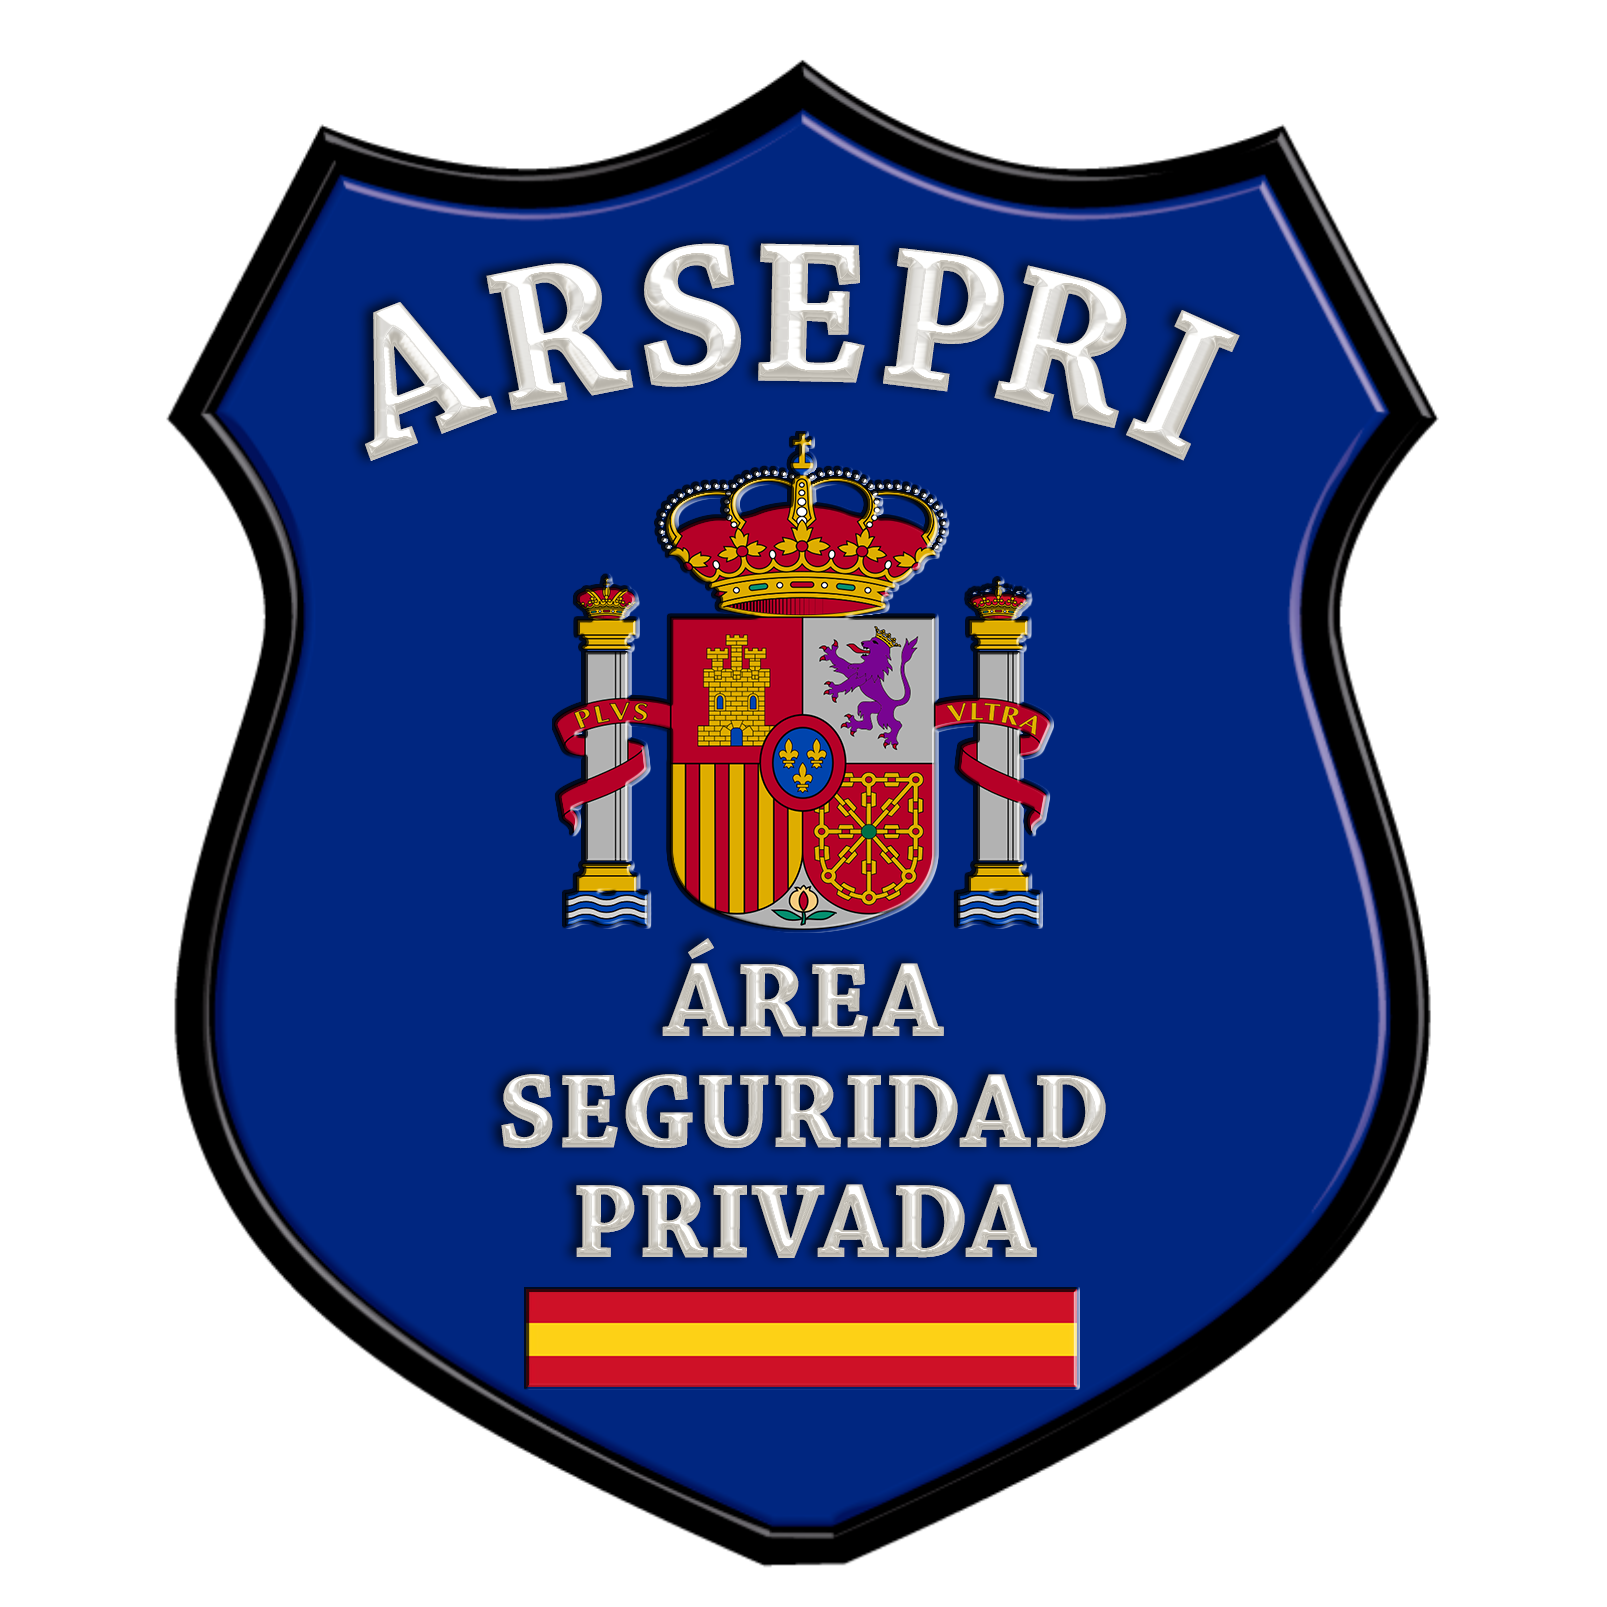 Arsepri